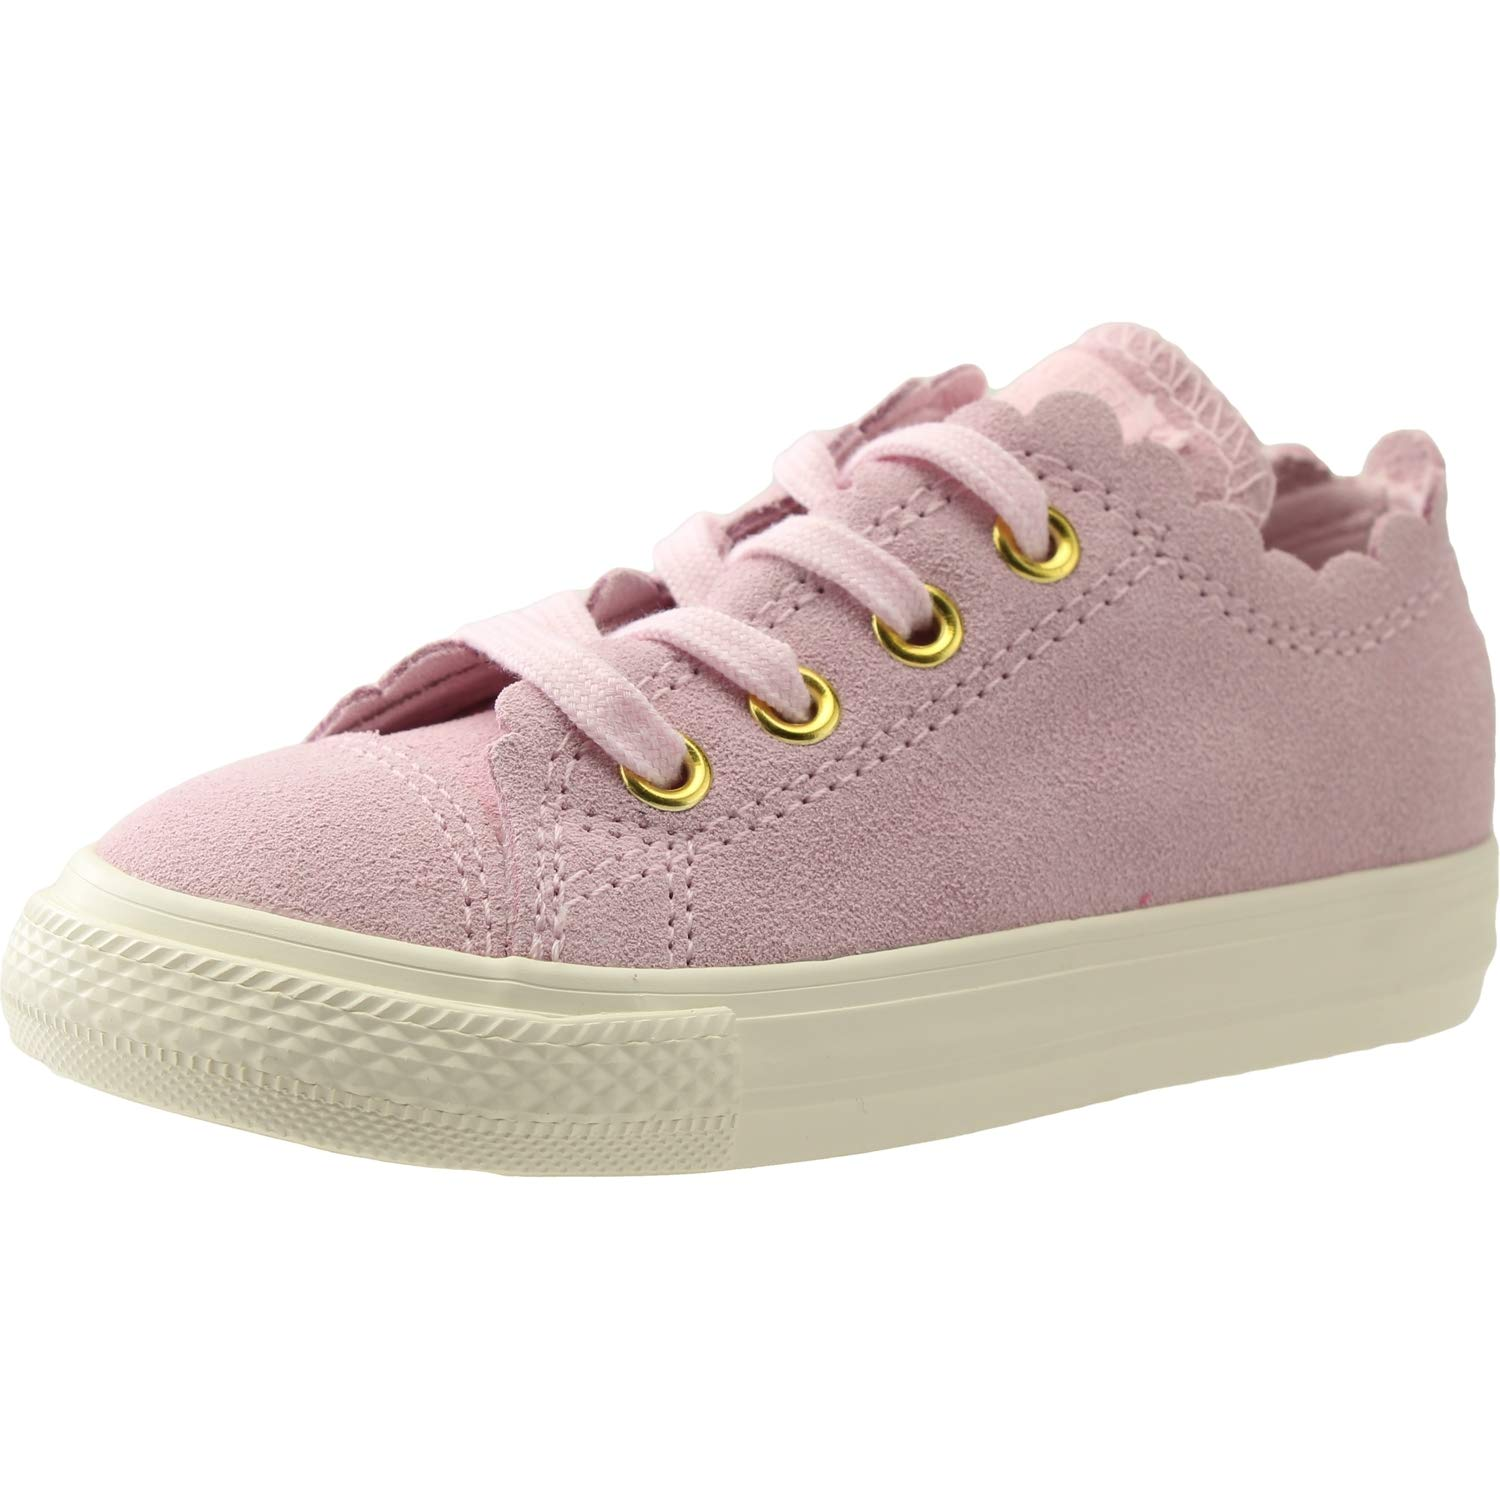 4c619e59a6 Amazon.com: Converse Kids Baby Girl's Chuck Taylor¿ All Star¿ Scalloped  Suede - Ox (Infant/Toddler): Shoes